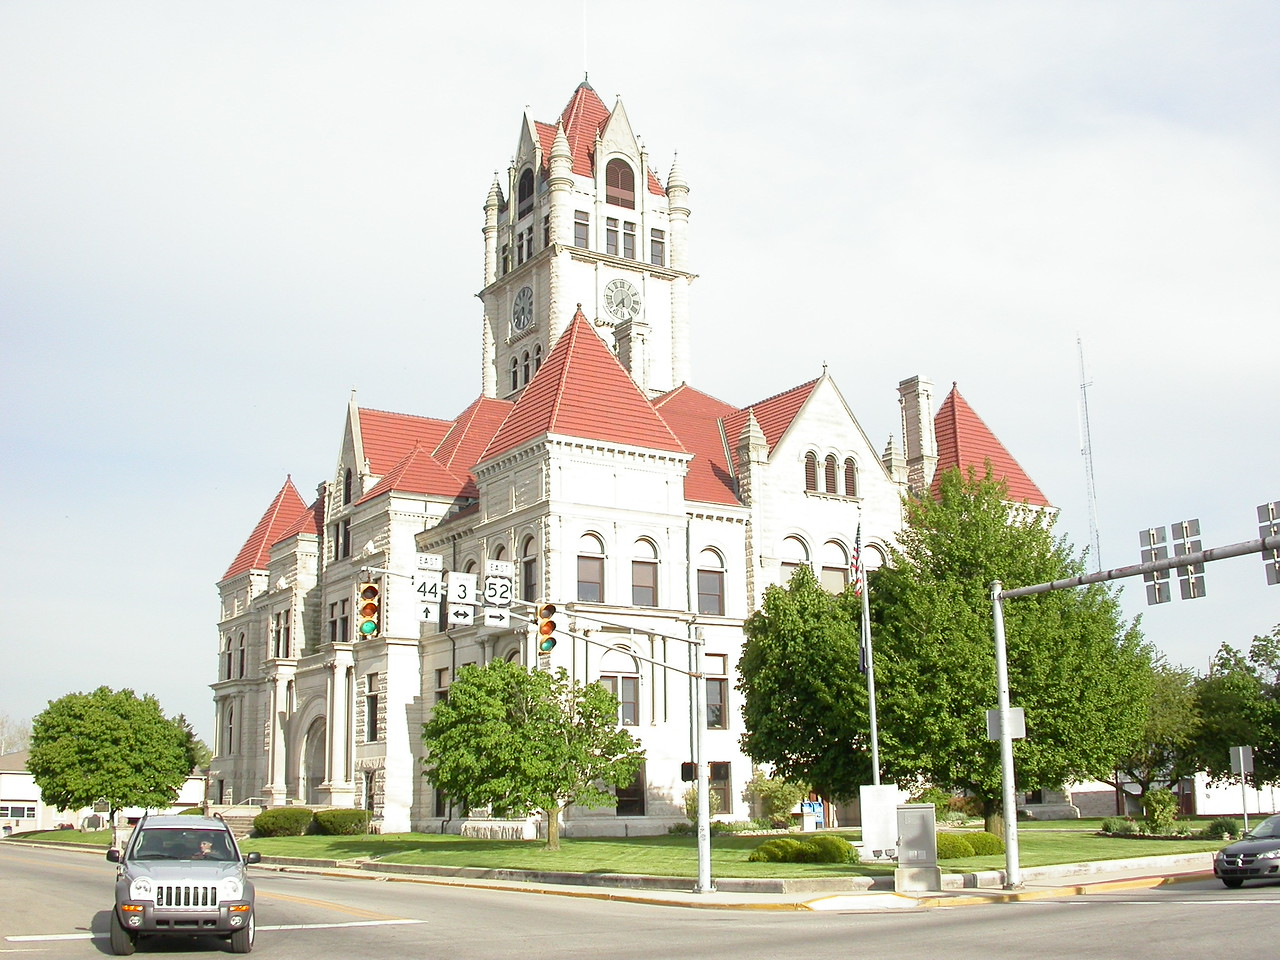 Rush County Courthouse, Rushville, Indiana, May 2004.